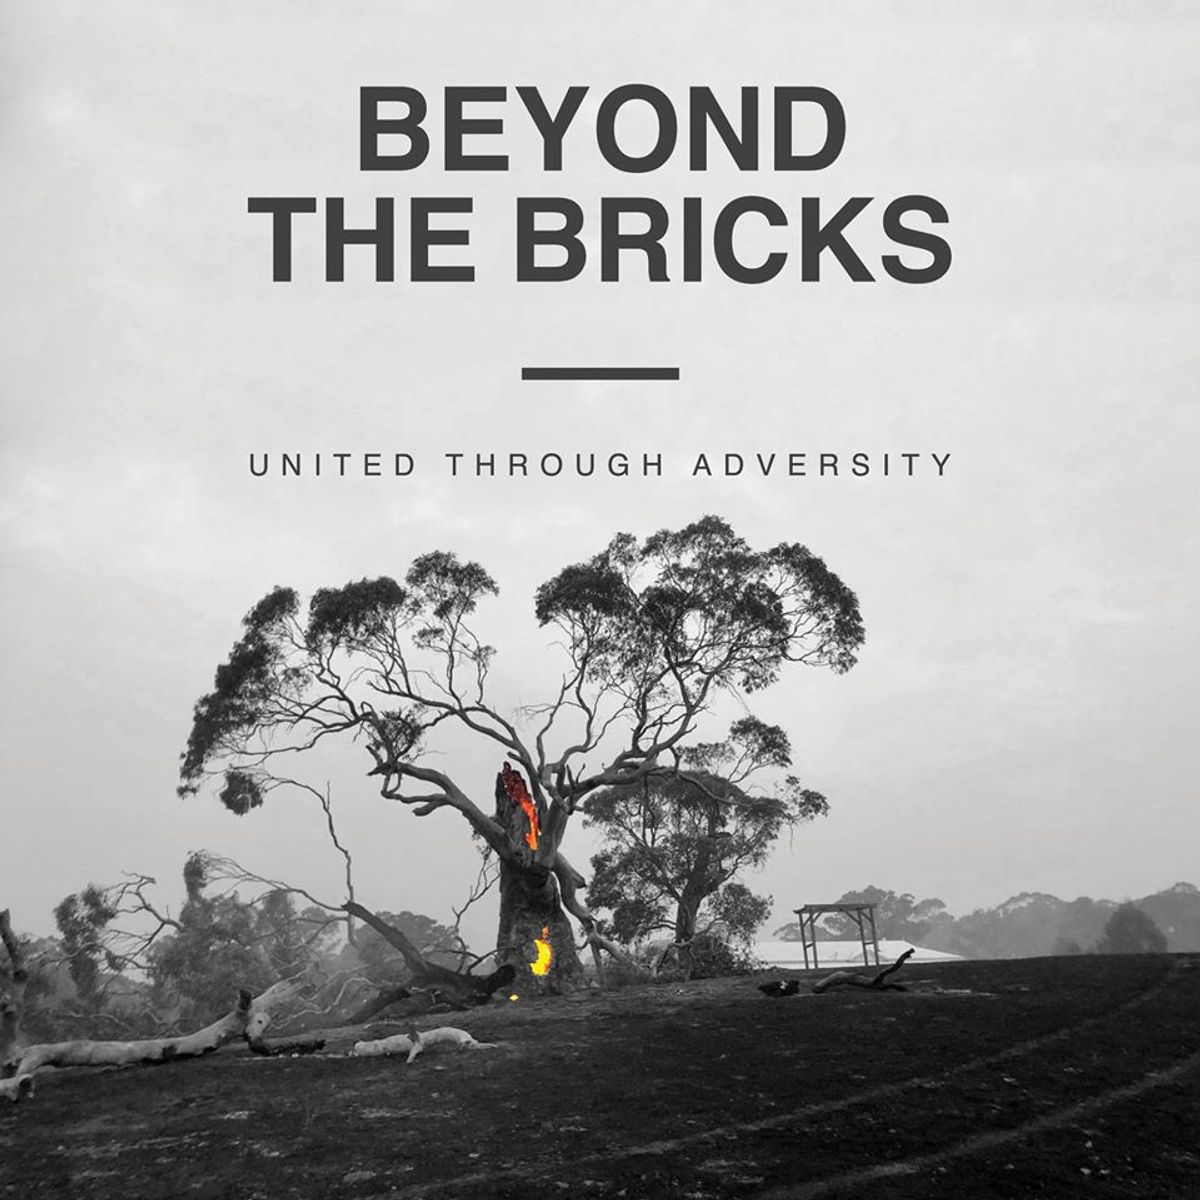 Beyond the Bricks